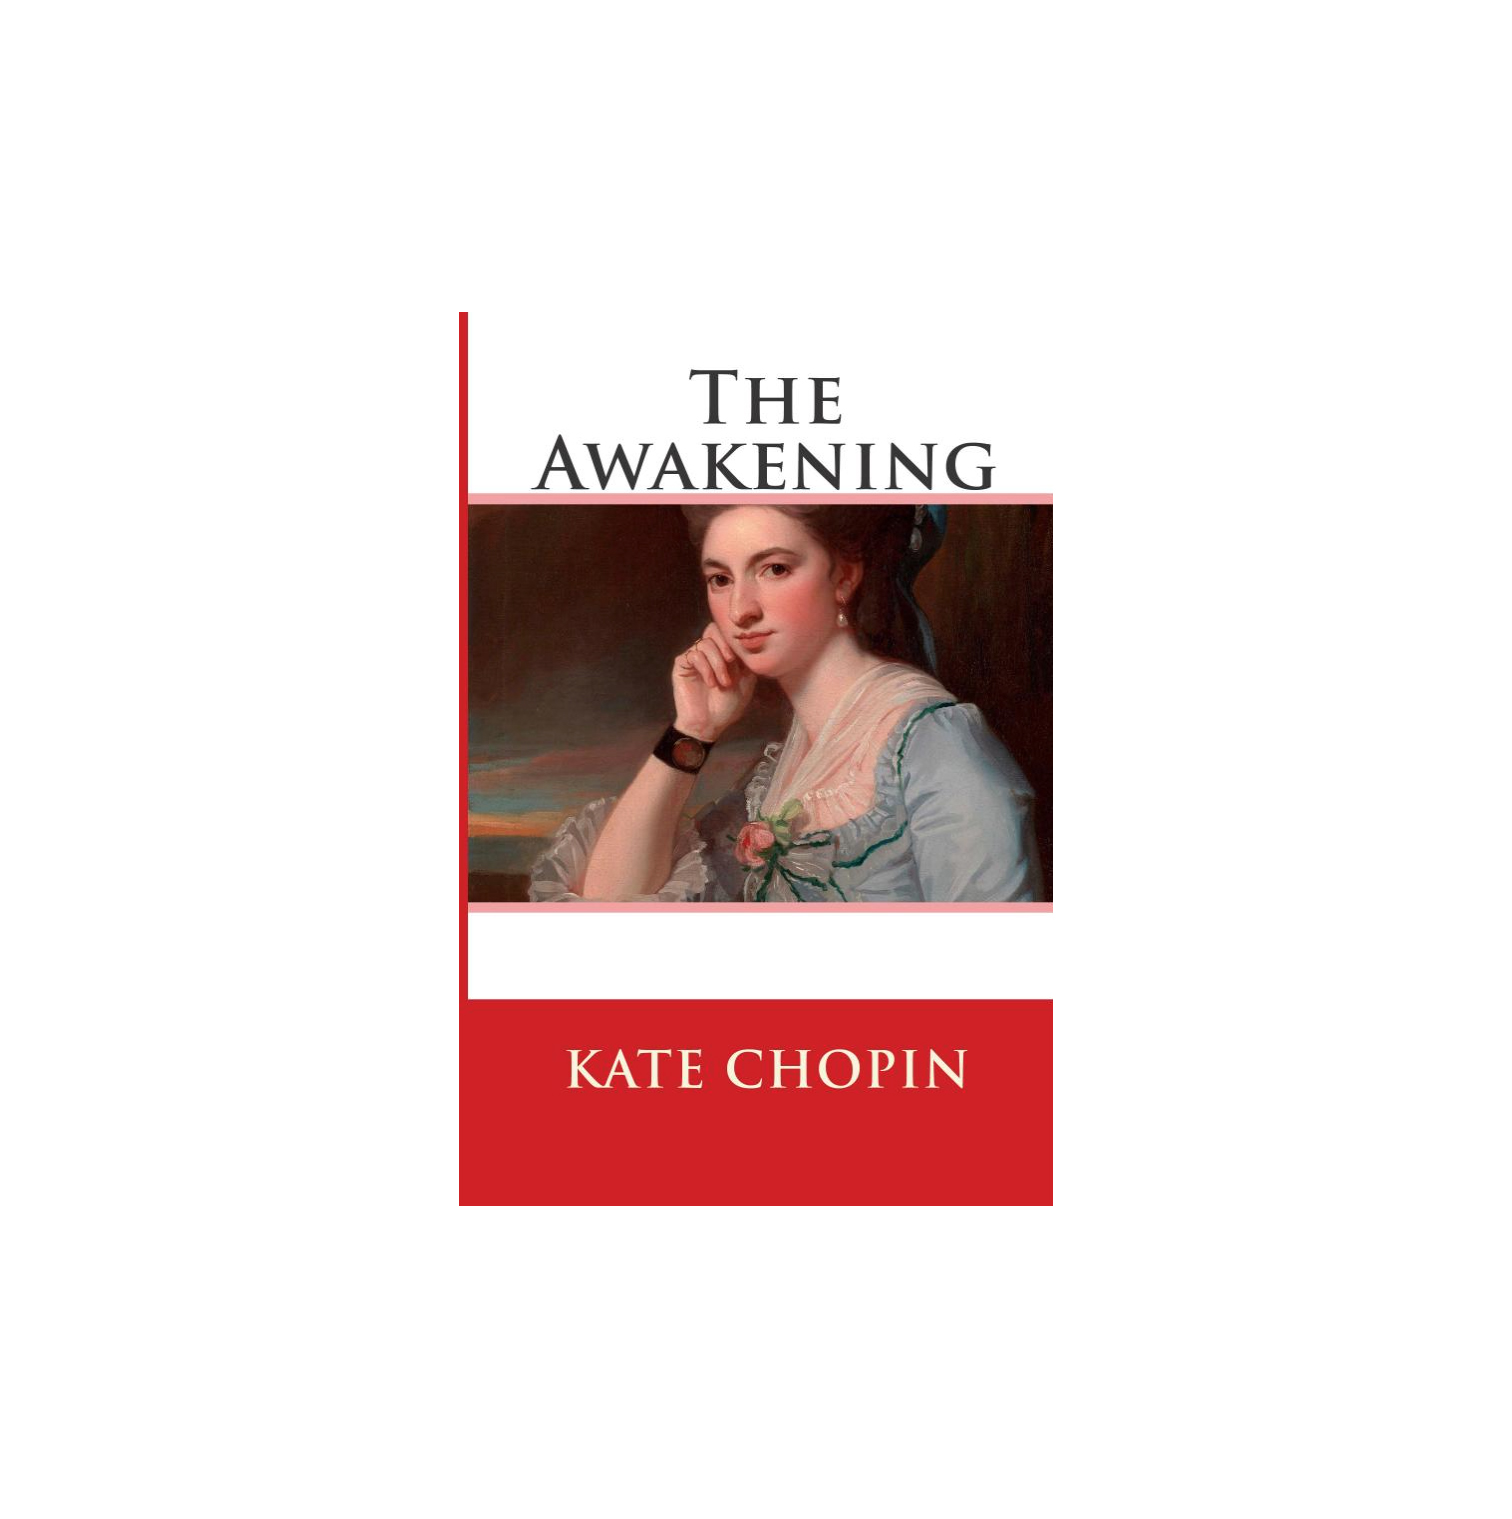 the awakening by kate chopin a womans search for independence Kate chopin's the awakening was a bold piece of fiction in its time, and  she  upset many nineteenth century expectations for women and their supposed roles   entering the world of capitalism is a big step in her search for independence.